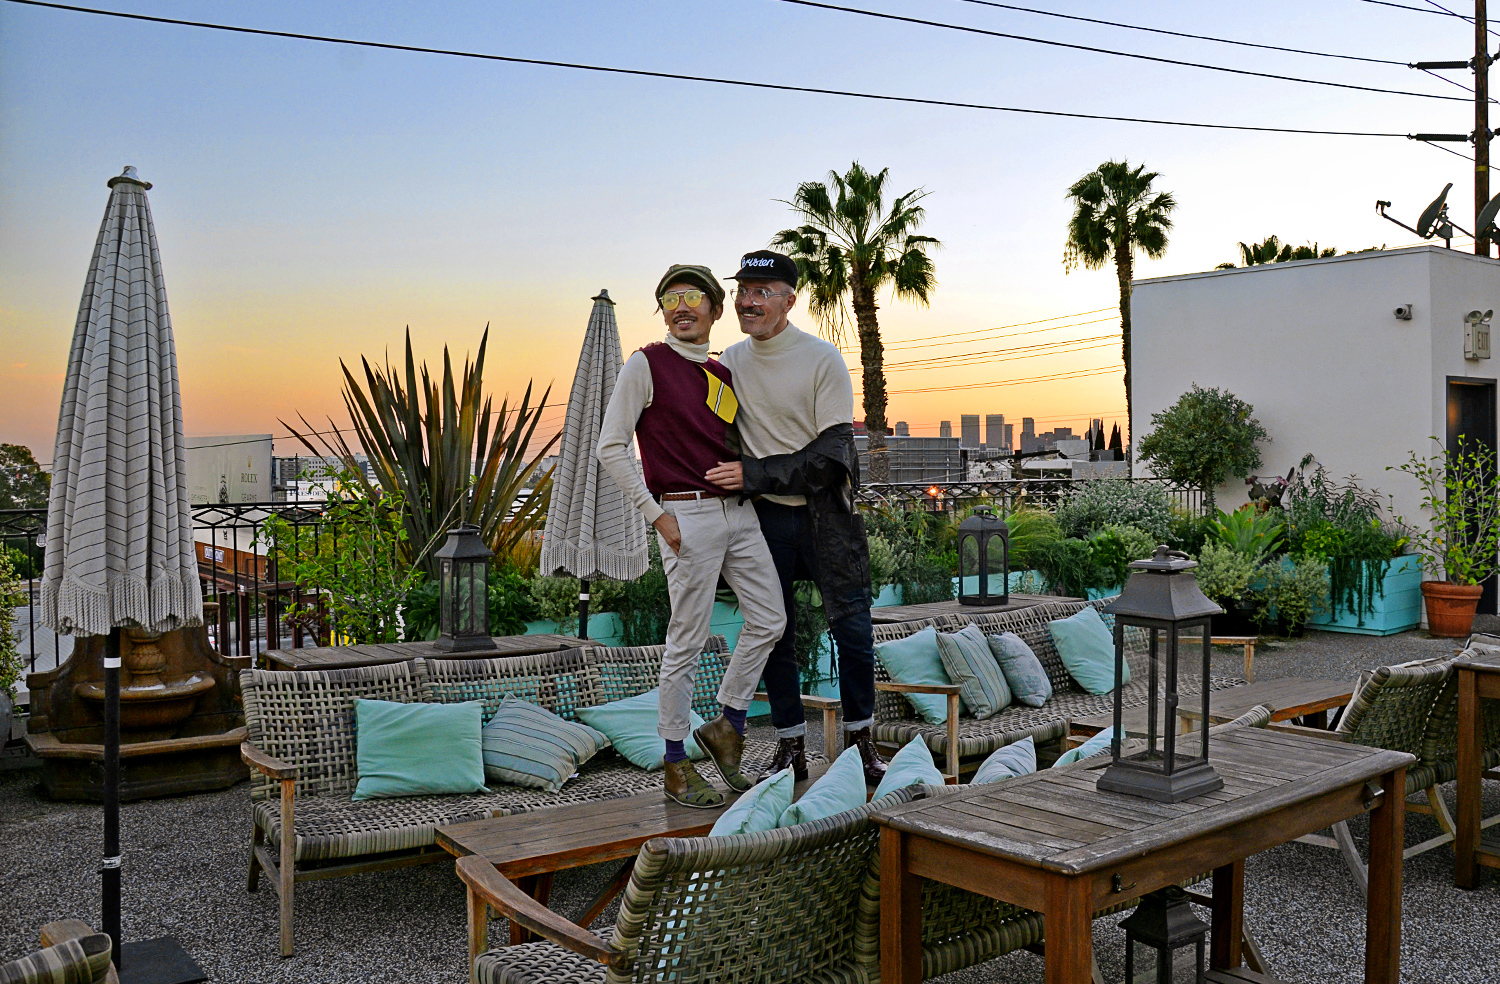 Palihouse West Hollywood: Where To Stay In WeHo